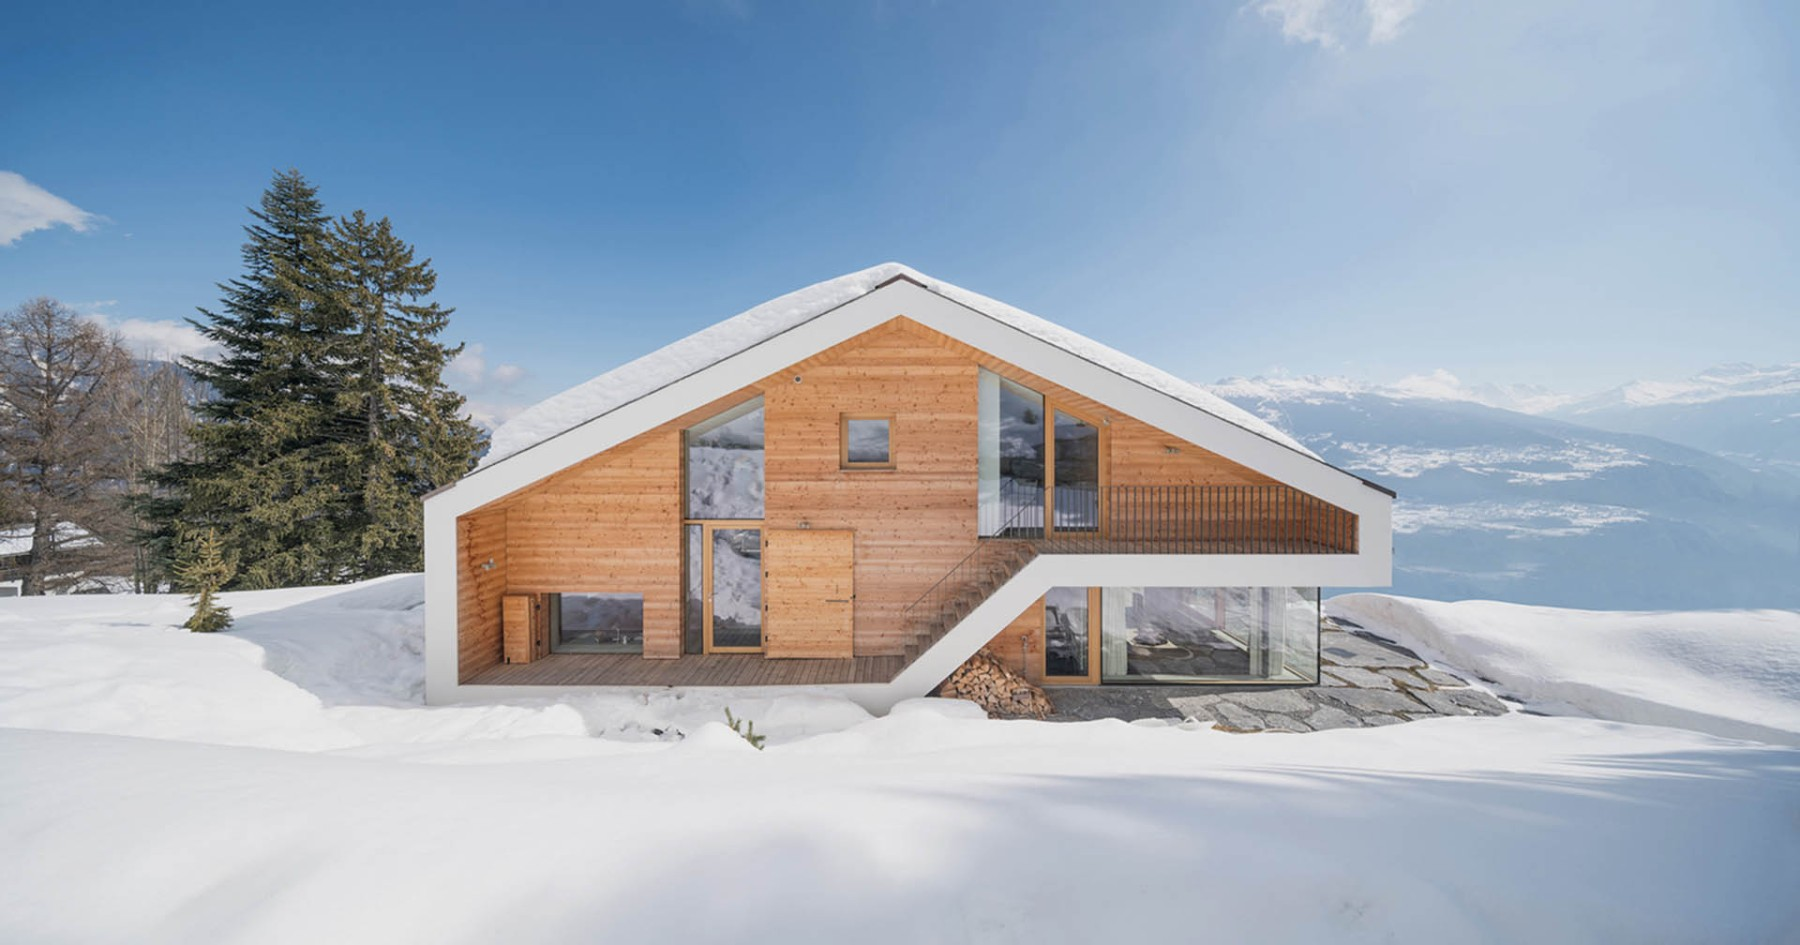 House Envy: Stunning Swiss Alps Chalet Will Give It to You